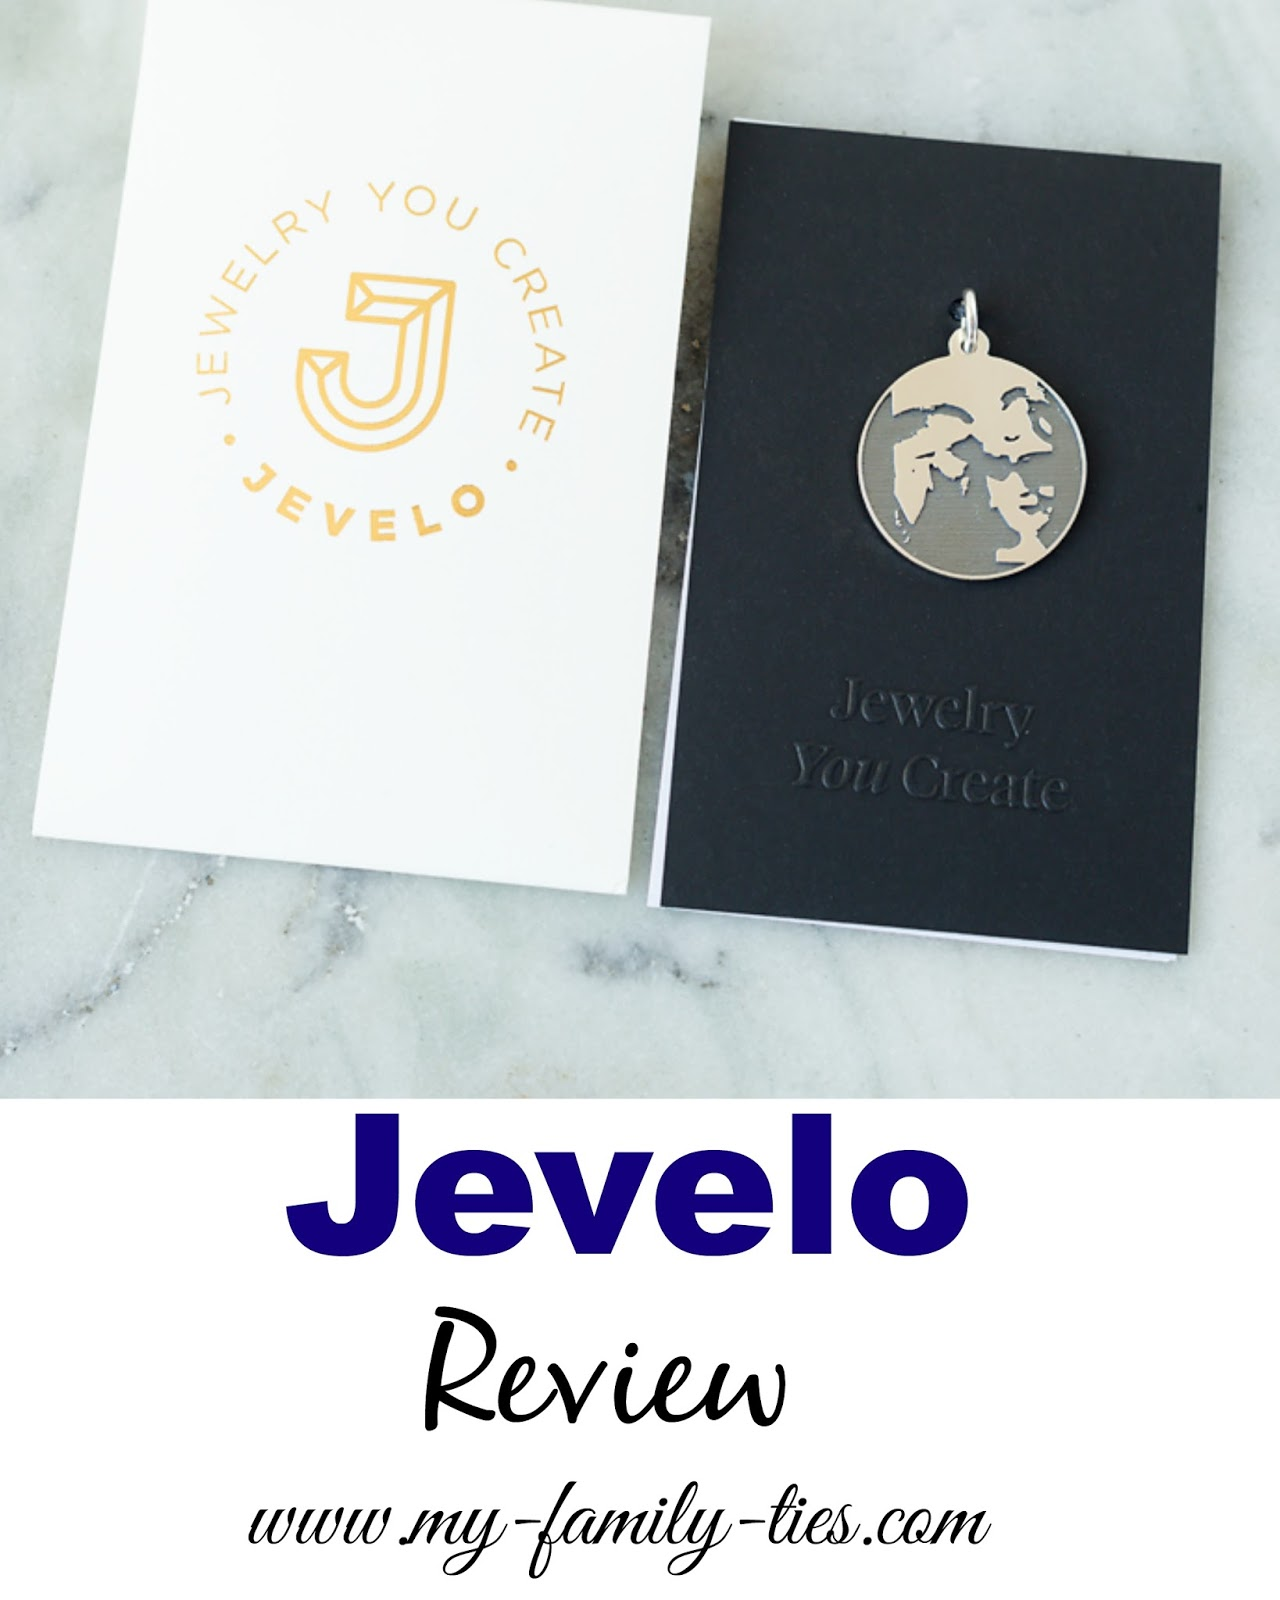 Jevelo personalised jewellery review photos by My Family Ties Blog www.my-family-ties.com